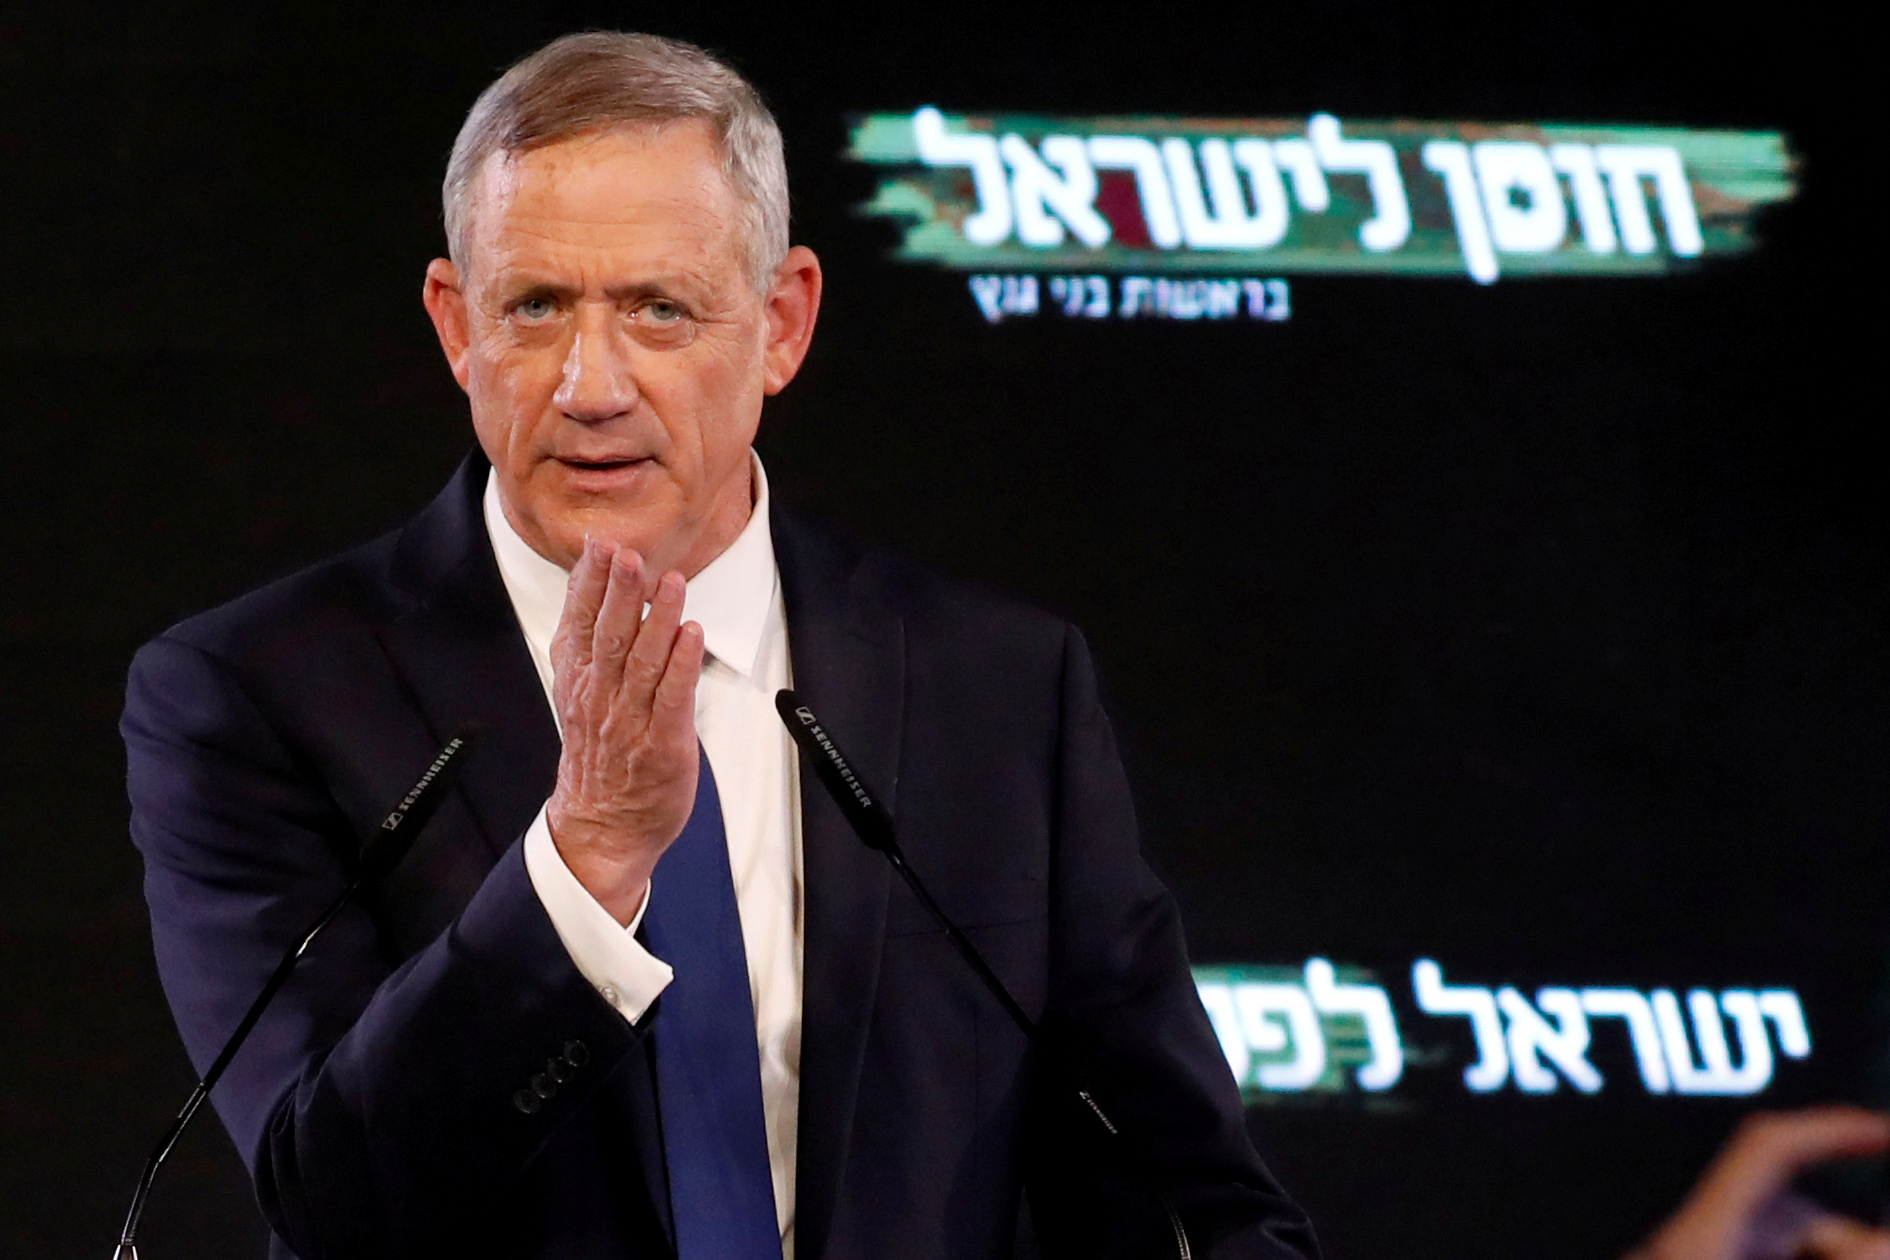 Israeli president invites rivals to break election deadlock